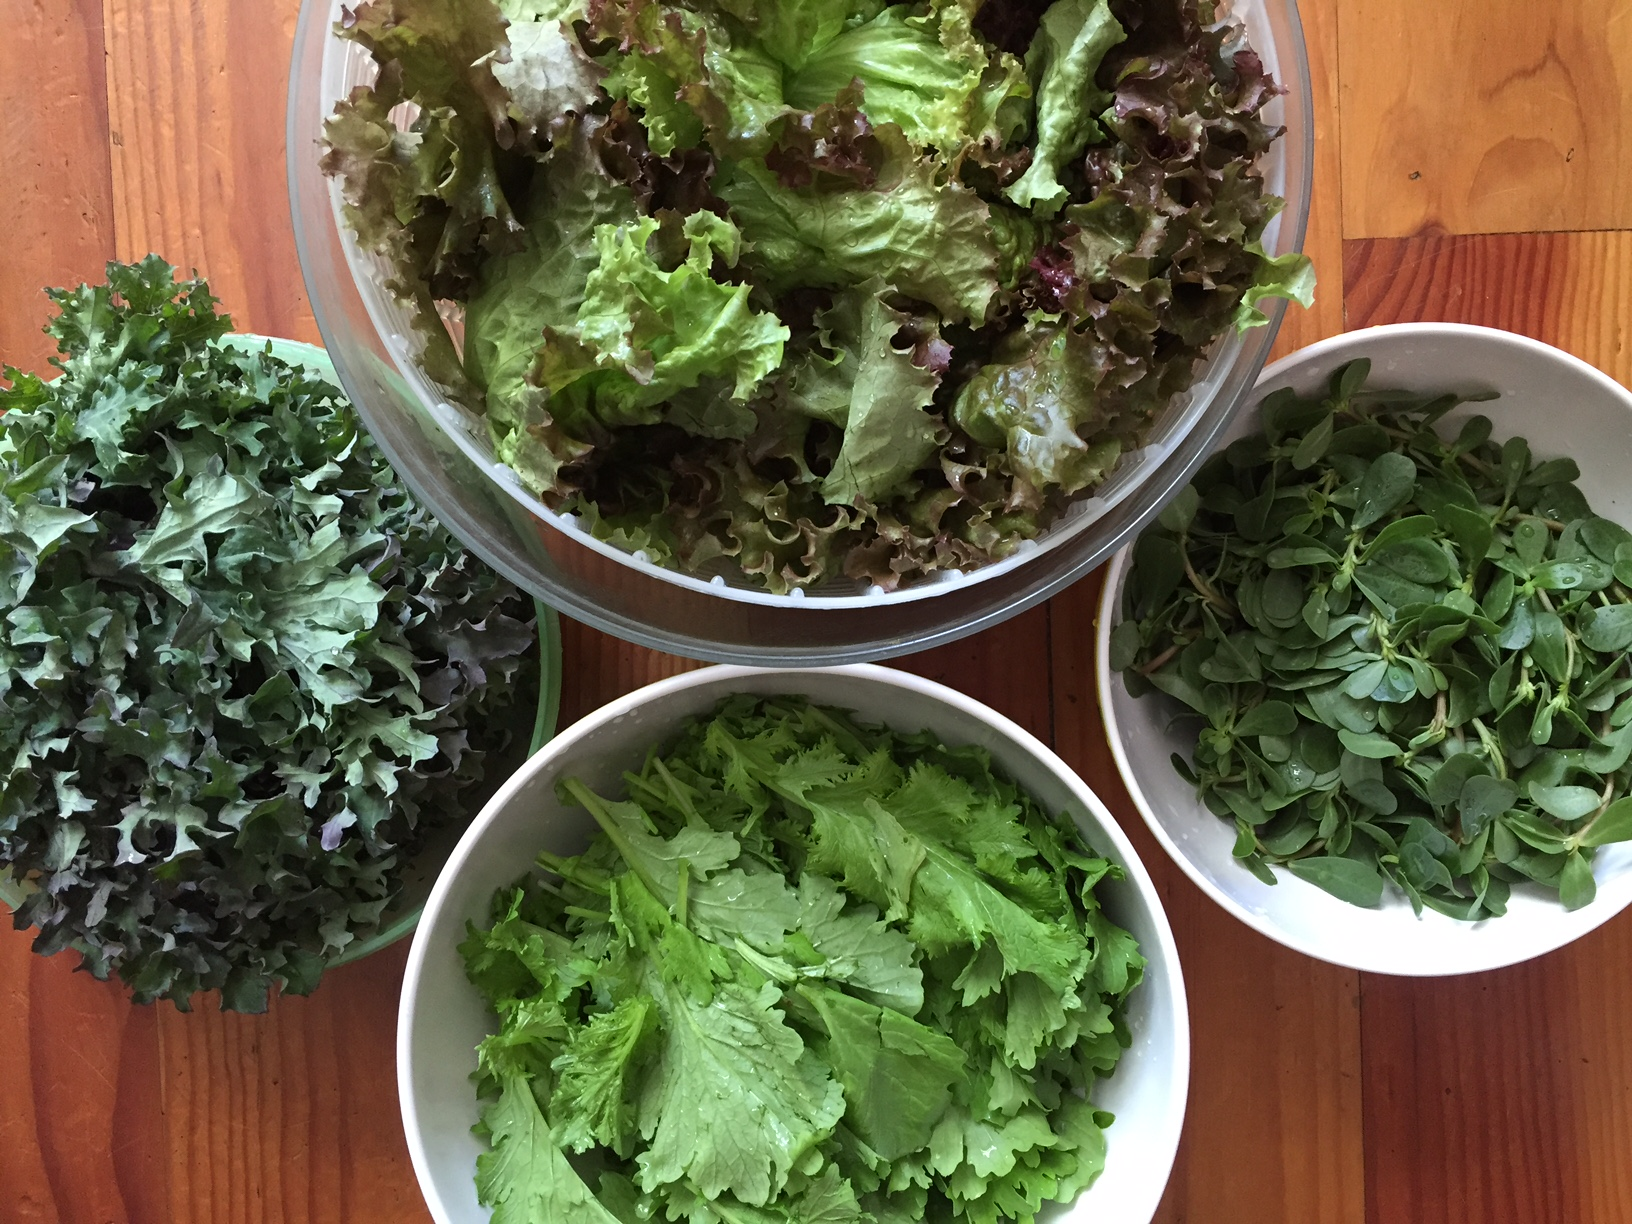 This week's greens: pizzo, purslane, kale, and red-leaf lettuce.